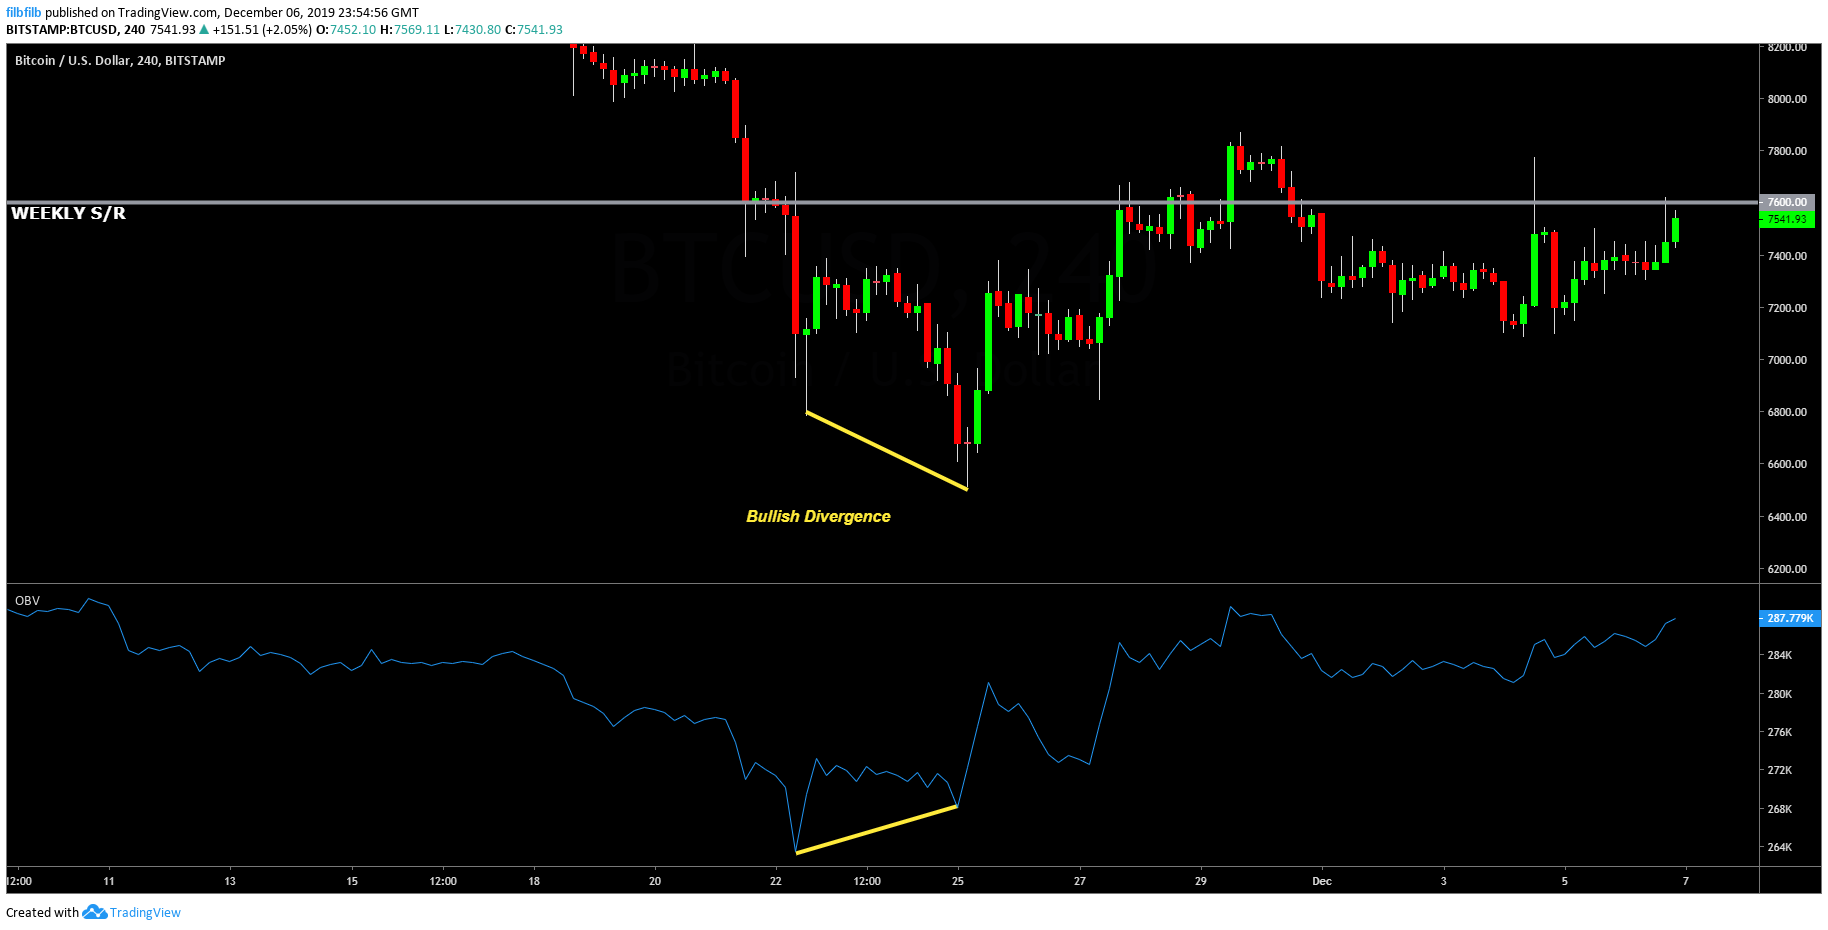 Bitcoin bullish divergences